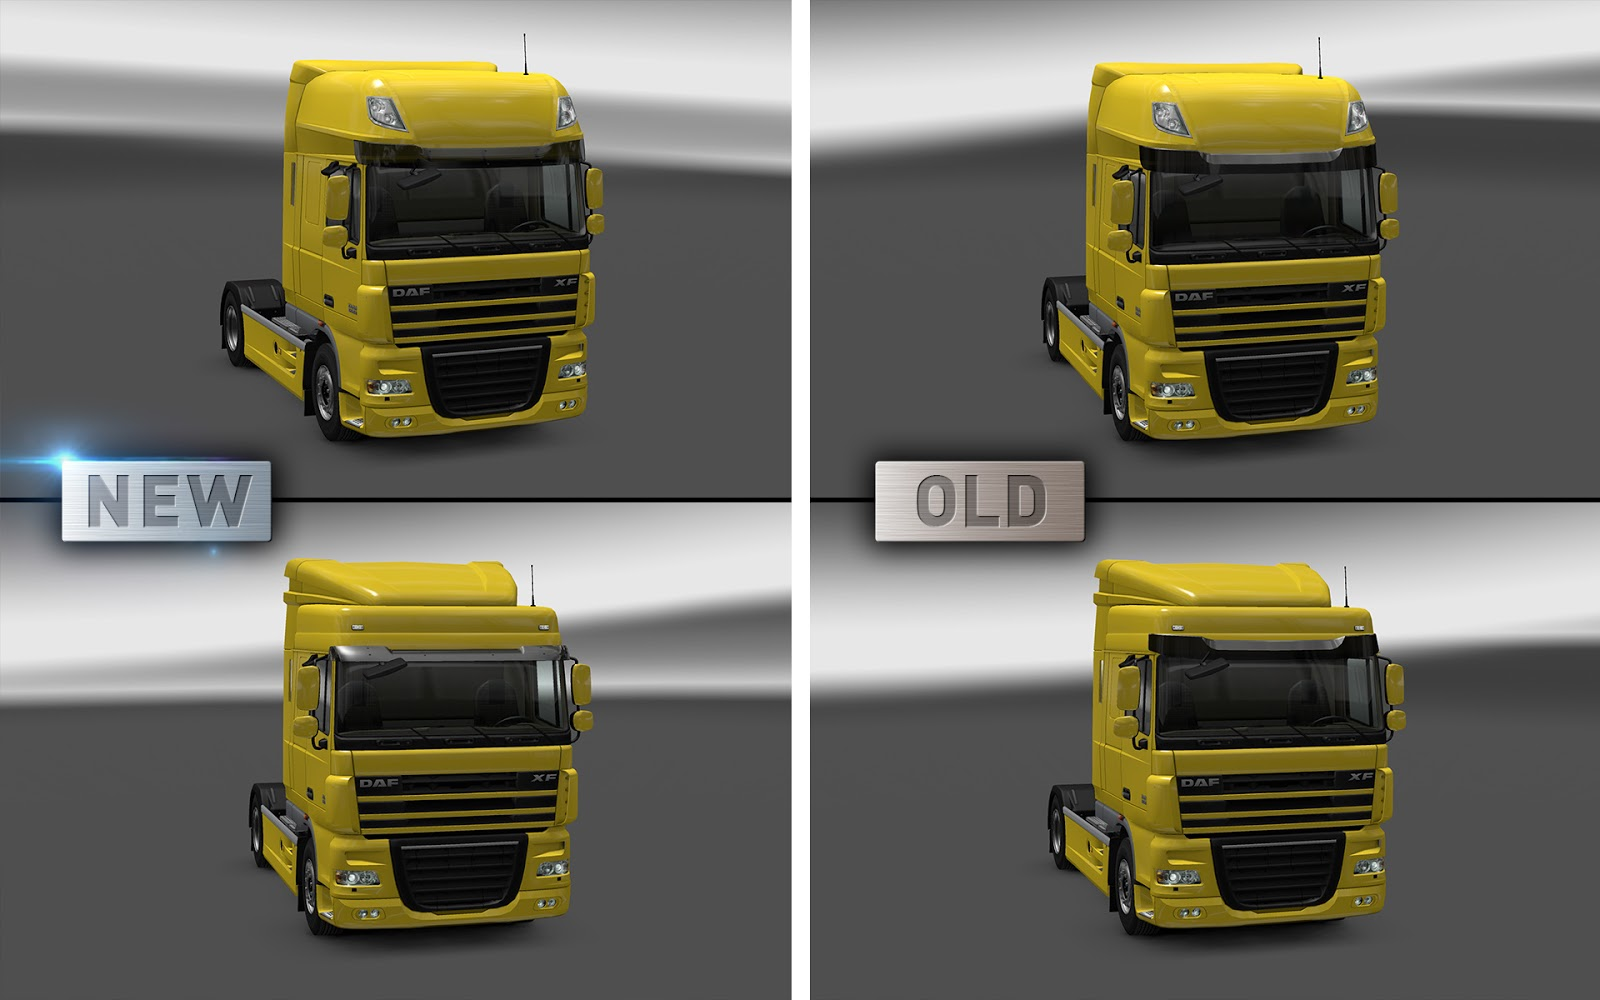 Update info and DAF XF 105 improvements